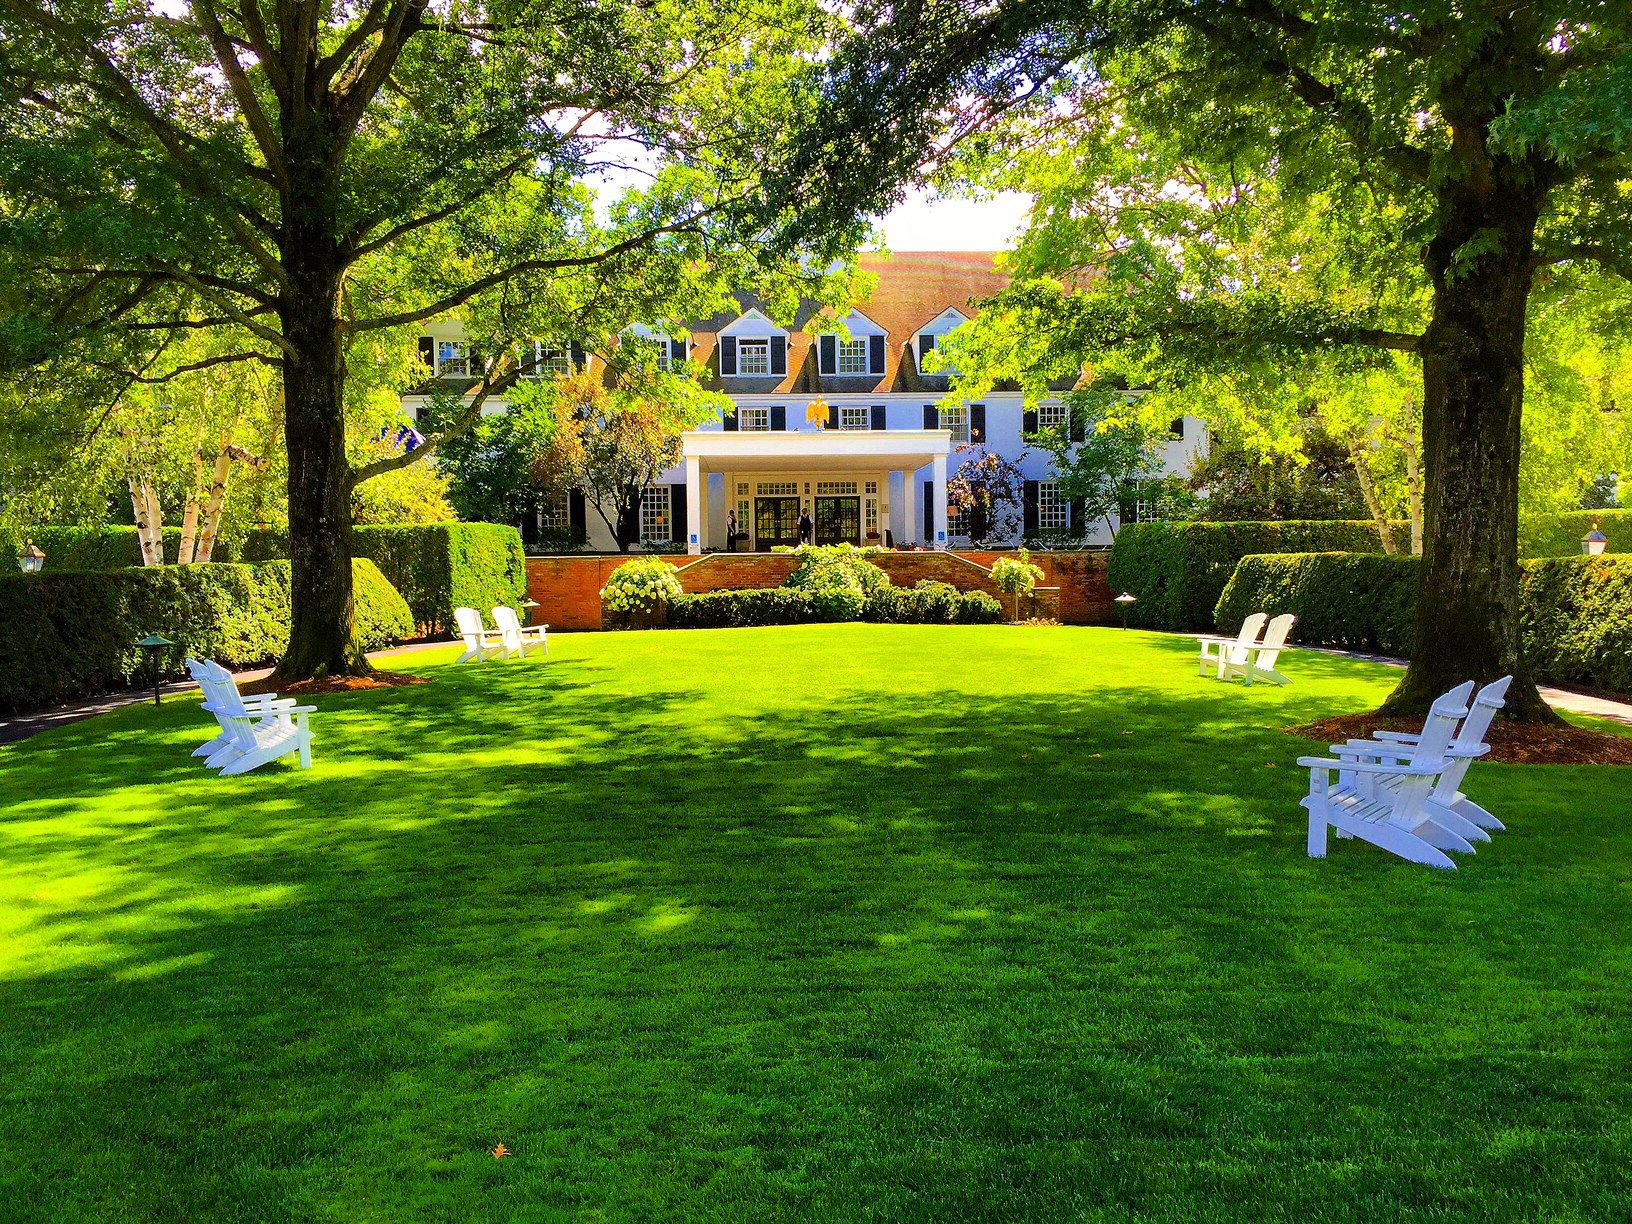 Destination wedding weekend itinerary in woodstock vermont destination wedding weekend itinerary in woodstock vermont venuelust destination wedding venues pinterest woodstock vt woodstock vermont and junglespirit Choice Image